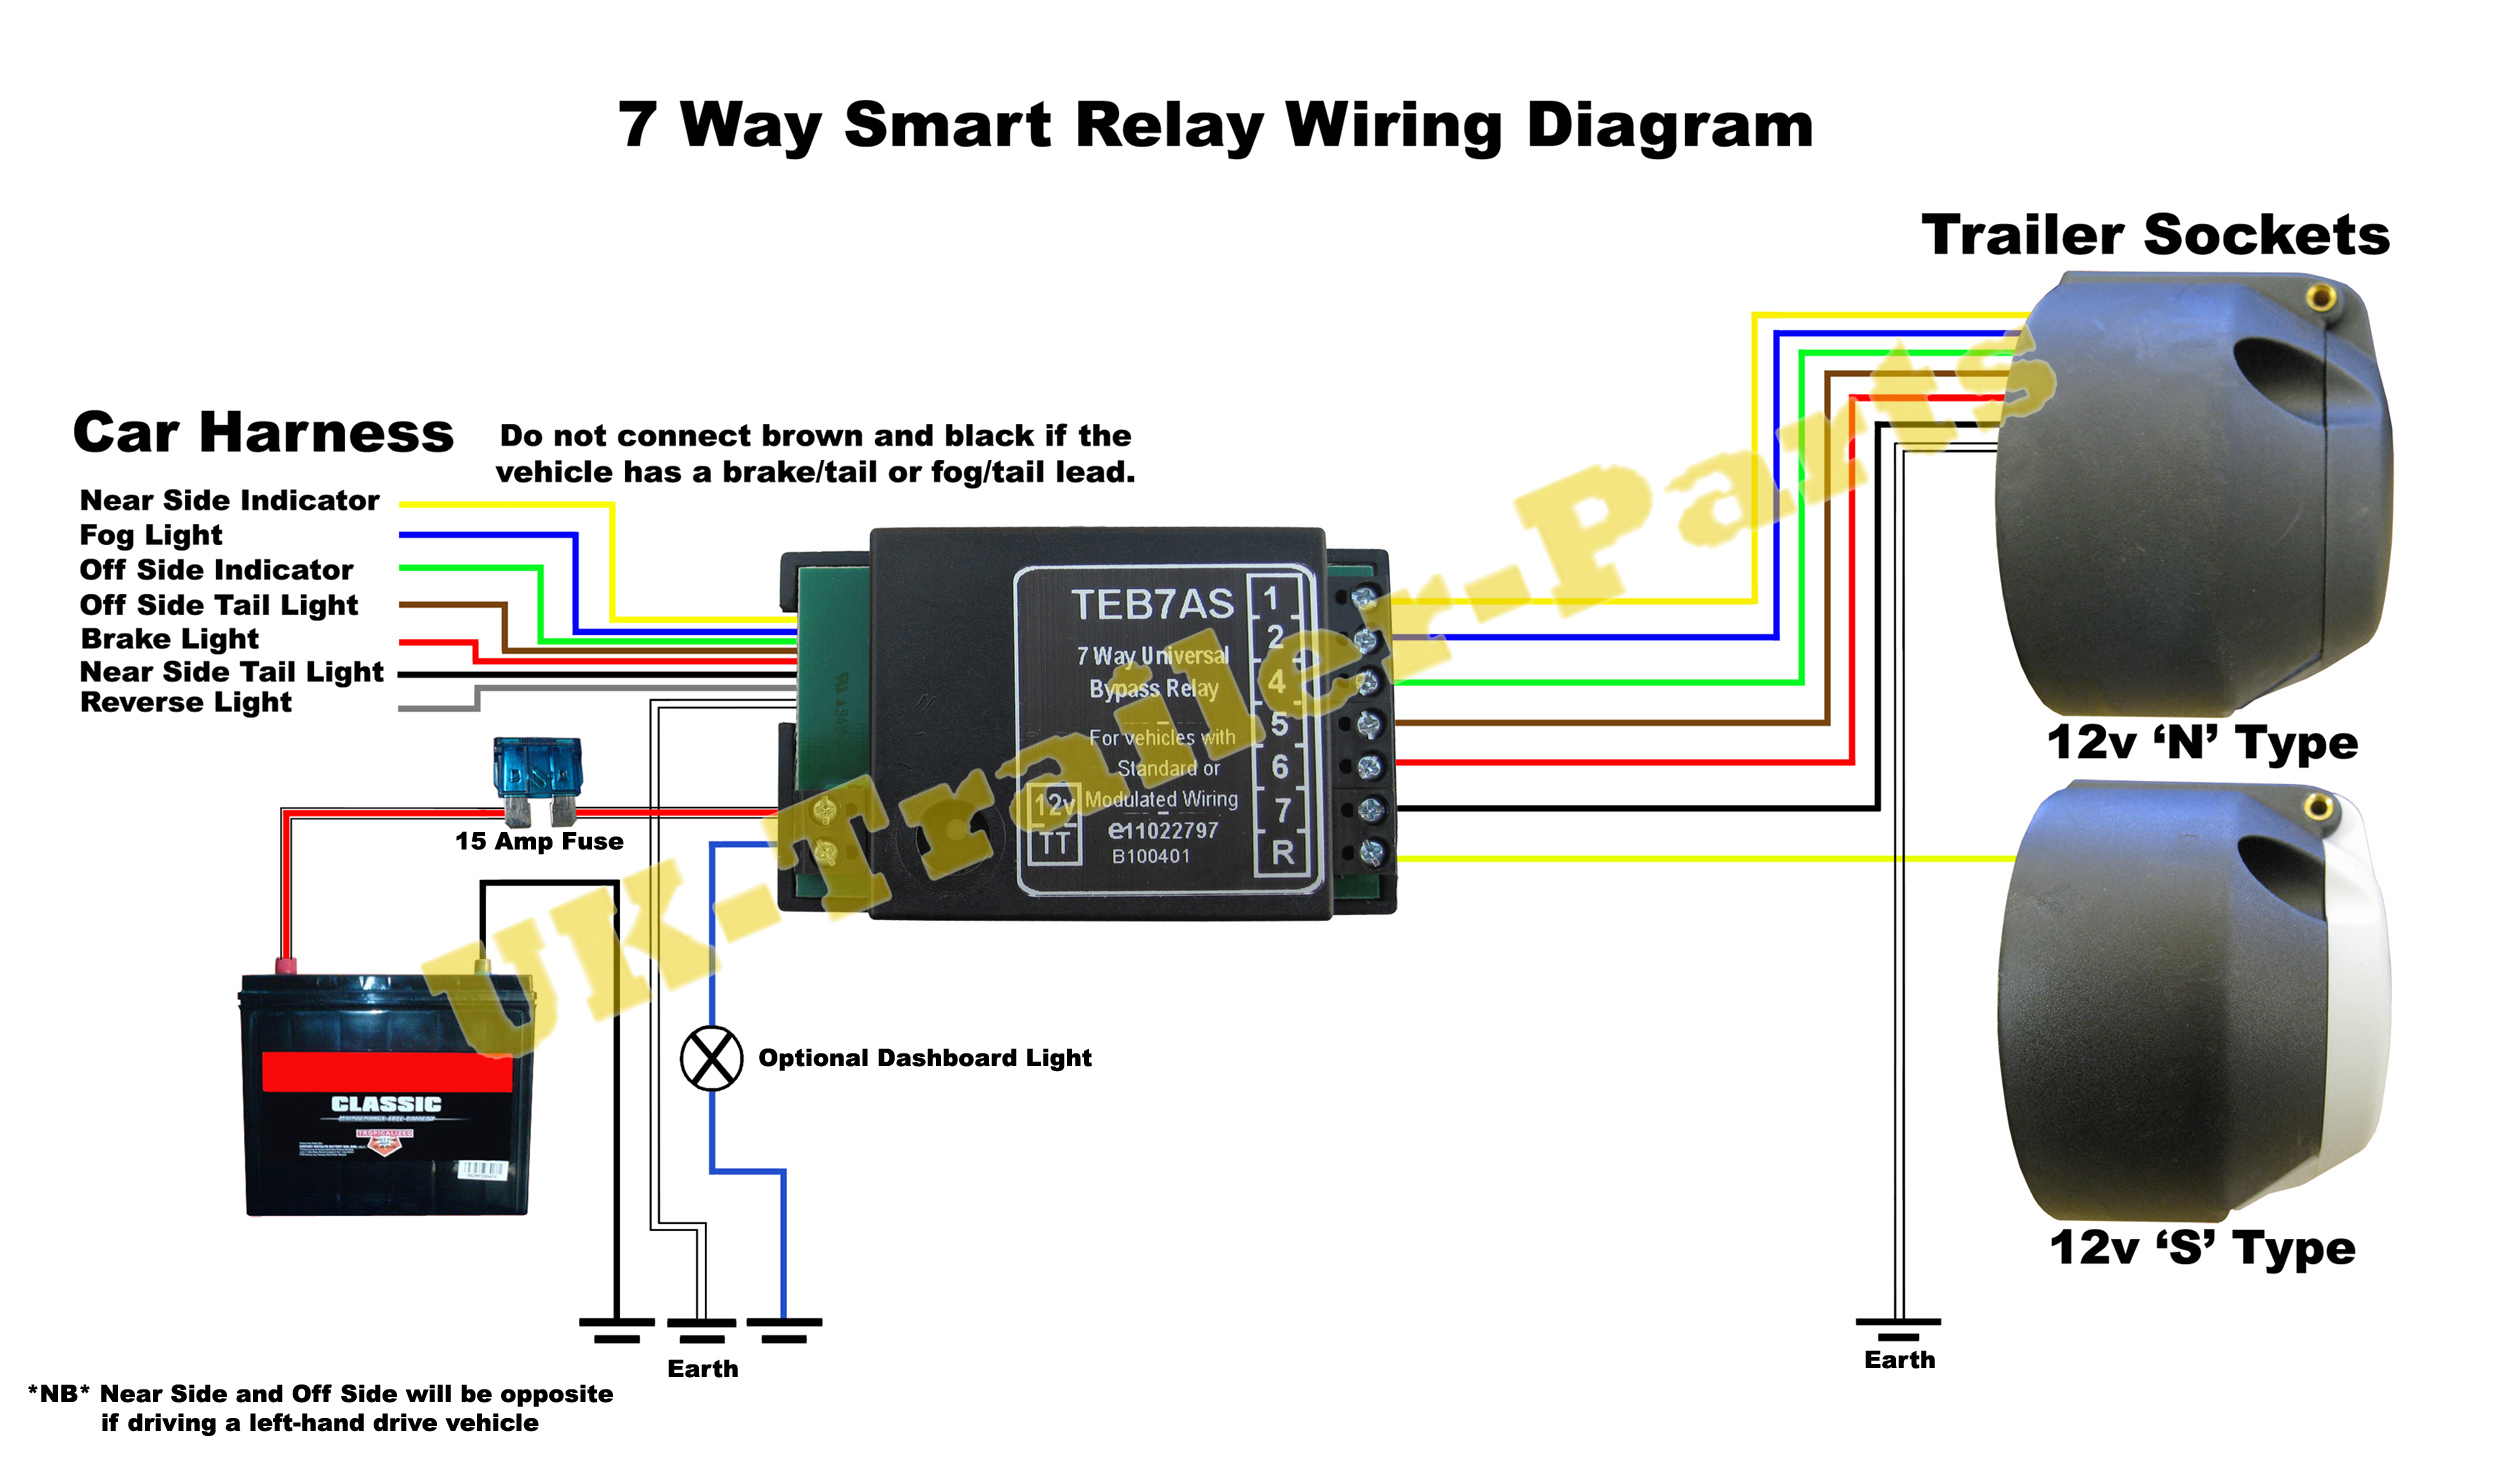 smart relay wiring diagram2 7 way universal bypass relay wiring diagram uk trailer parts volvo v70 towbar wiring diagram at edmiracle.co